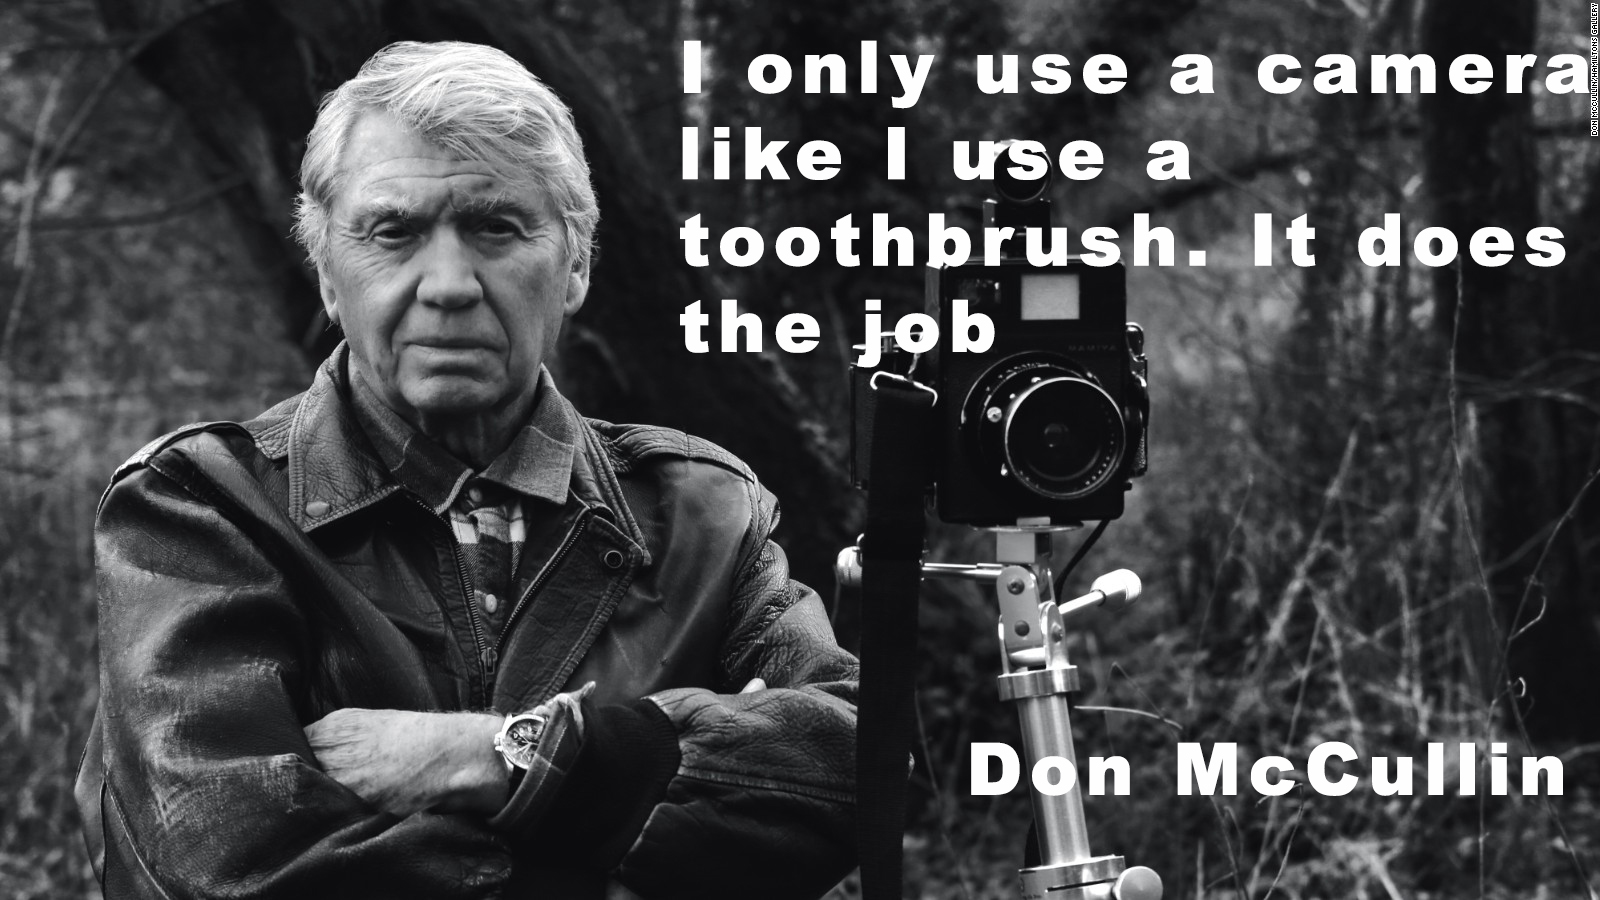 28i only use a camera like i use a toothbrush it does the job don mccullin